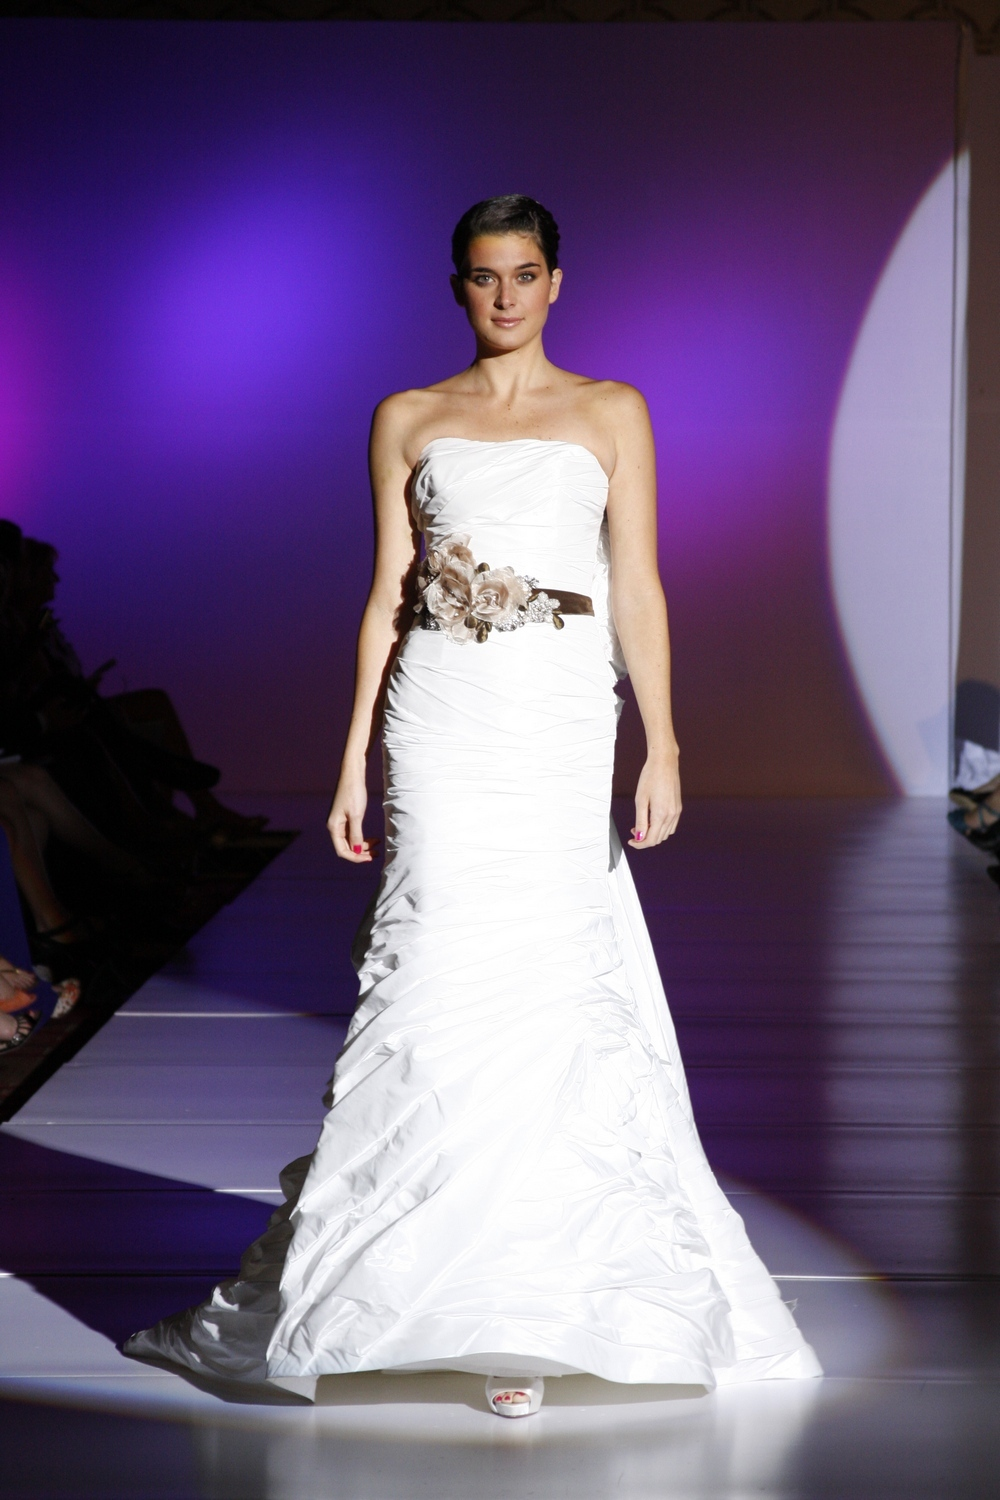 Enzoani-fern-spring-2011-wedding-dress-modified-mermaid-tiers-strapless-statement-bridal-belt-front.full